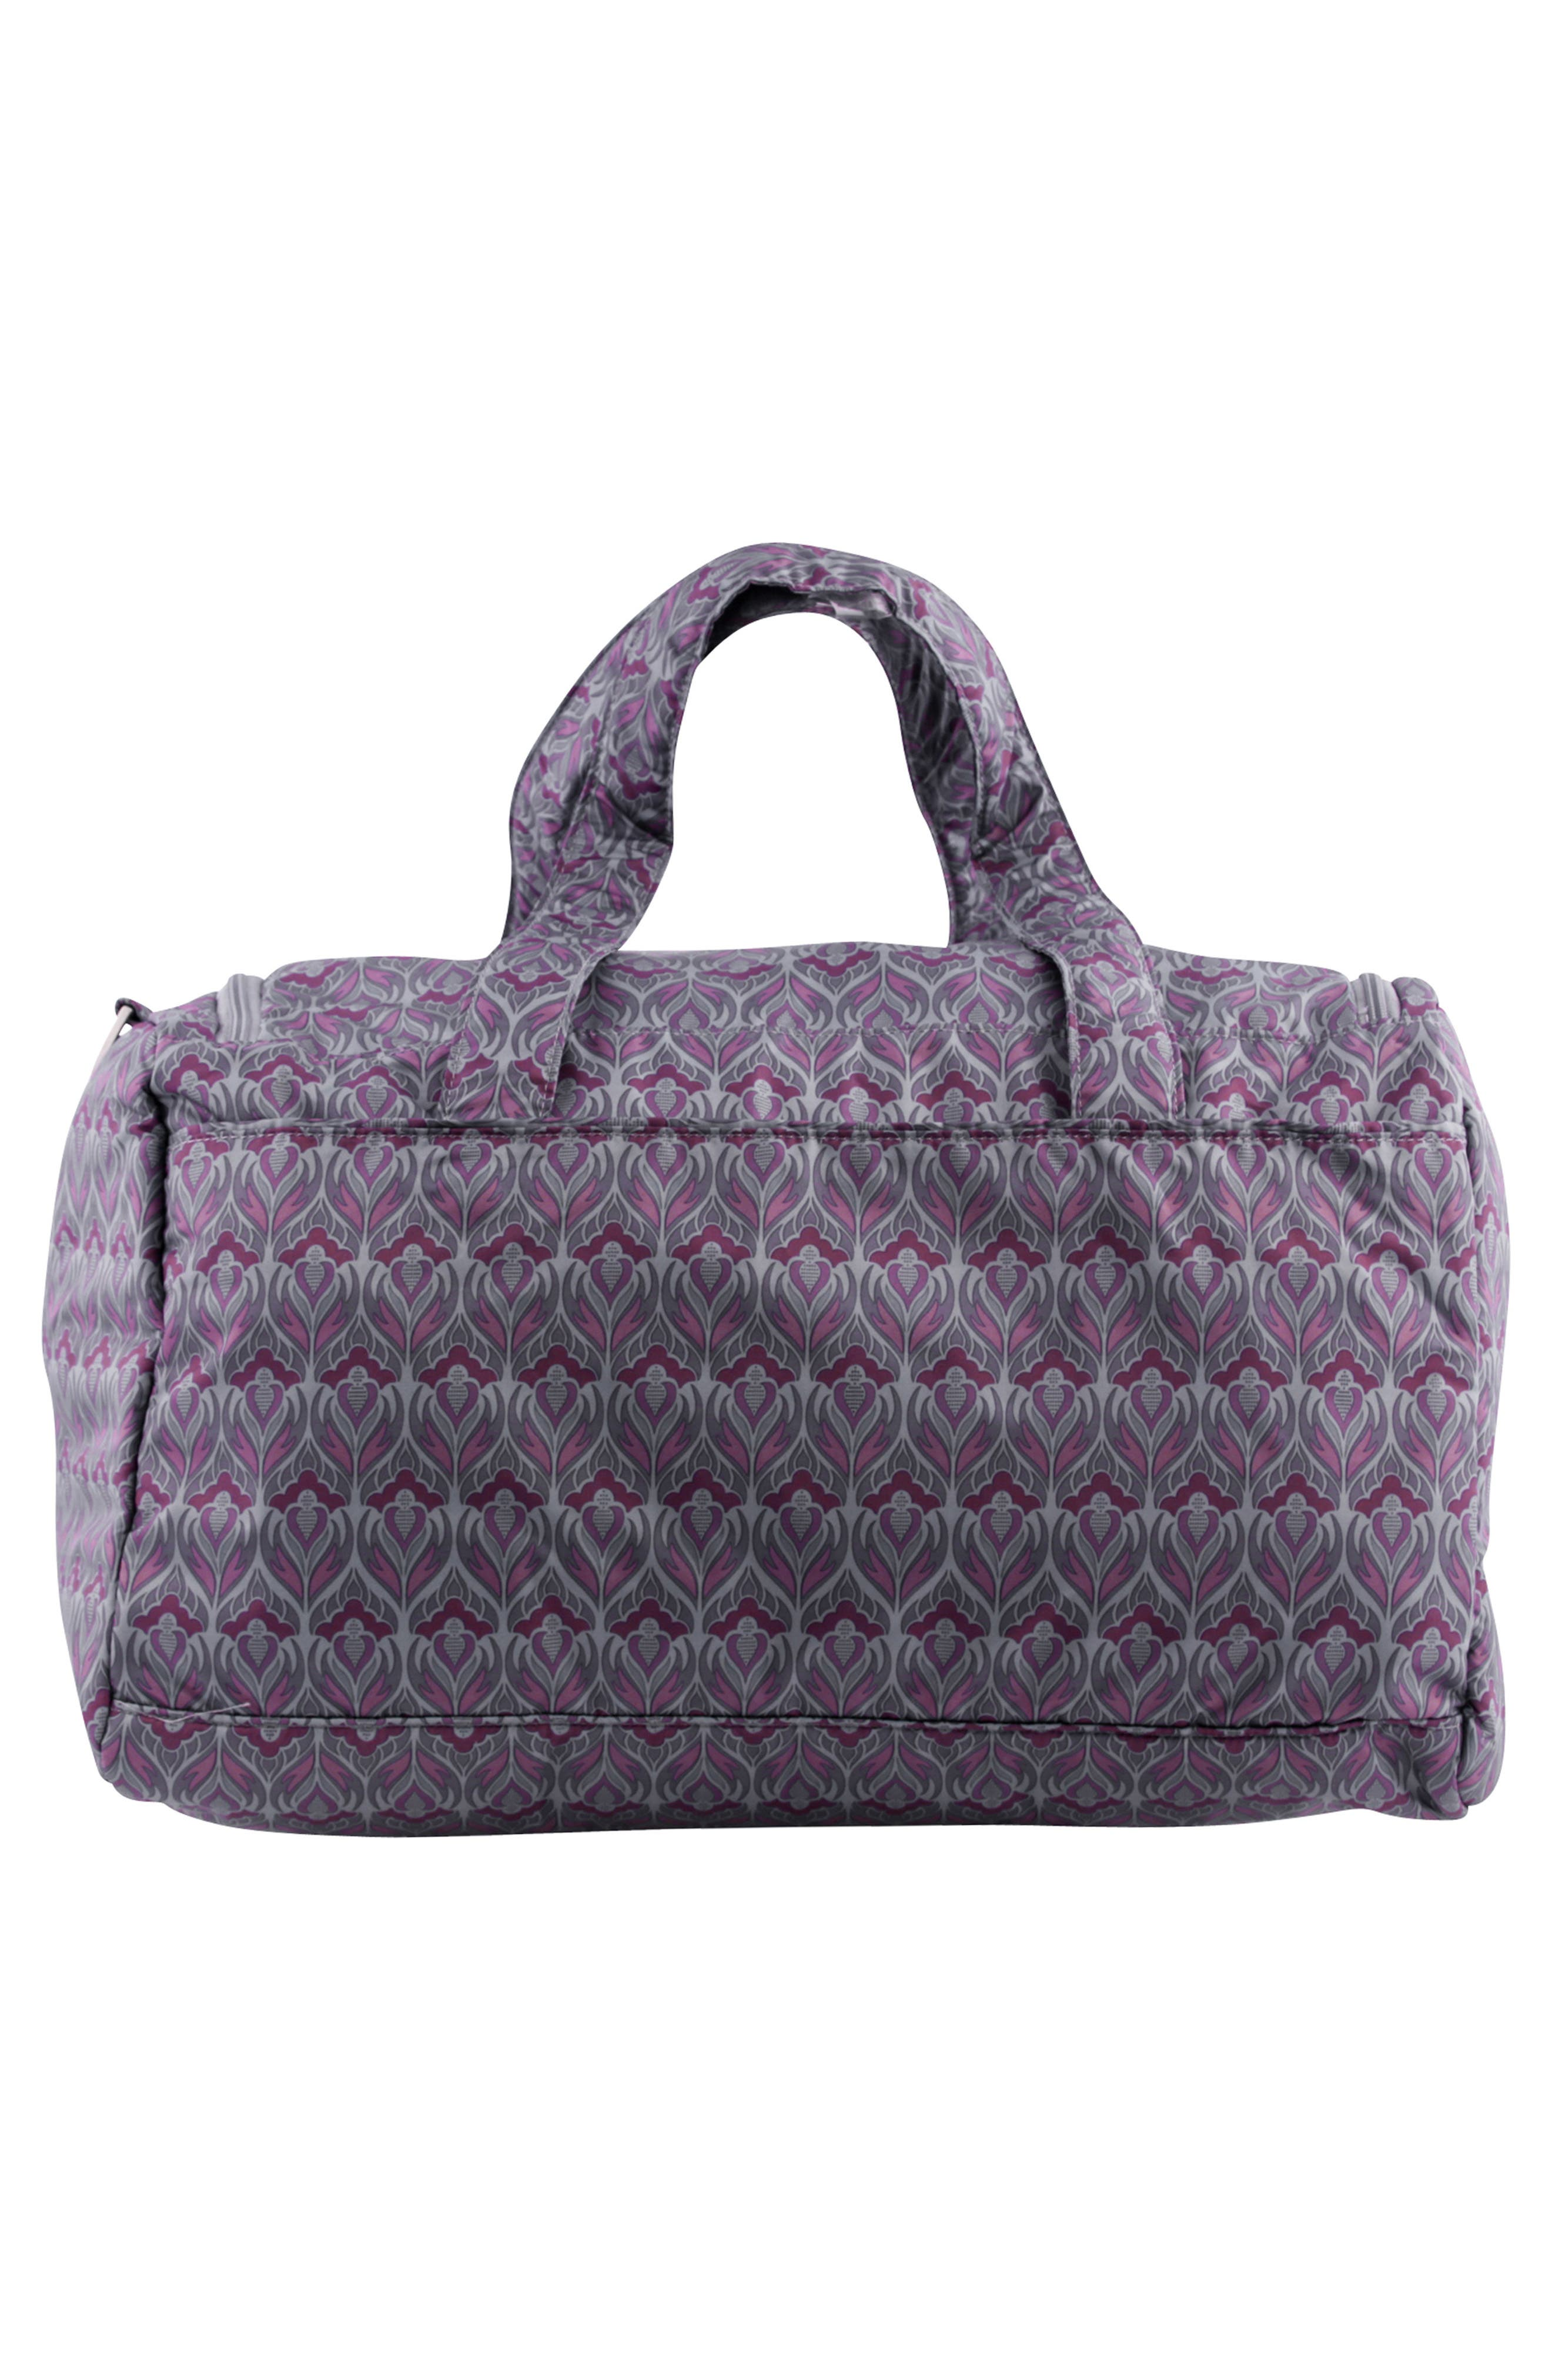 'Starlet' Travel Diaper Bag,                             Alternate thumbnail 9, color,